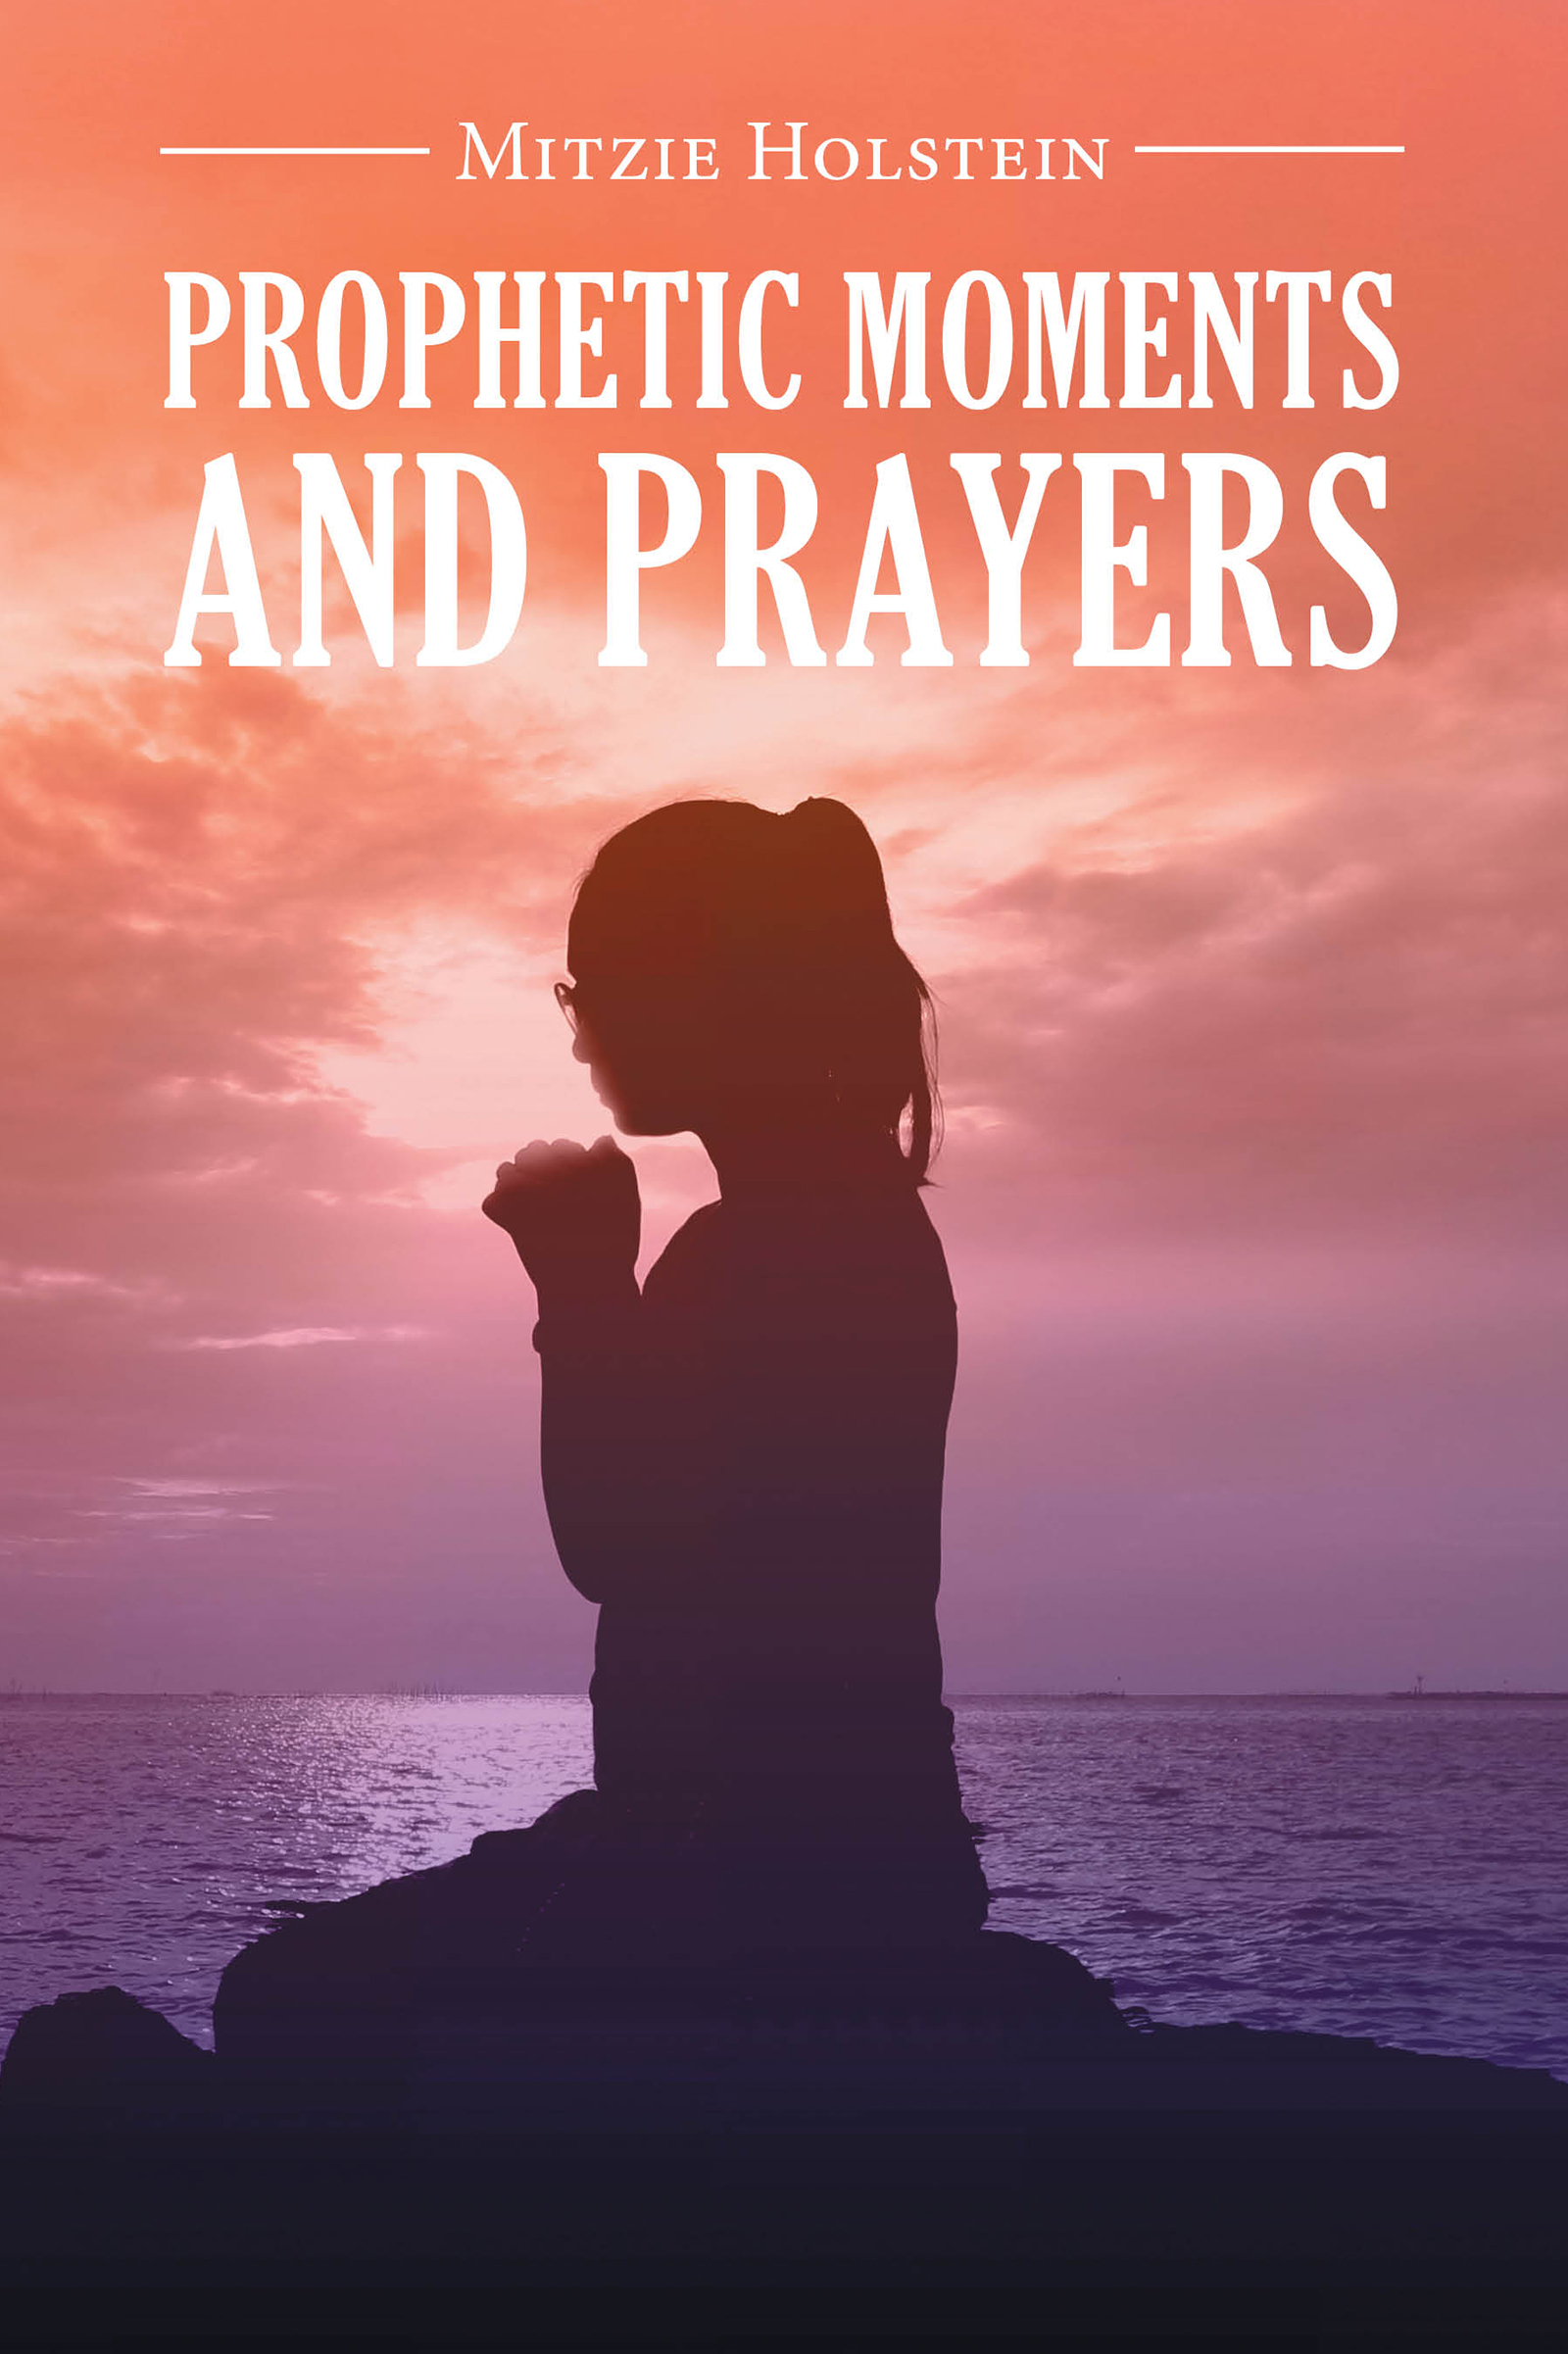 Author Mitzie Holstein Pens One of the Best Prayer Books for Every Christian